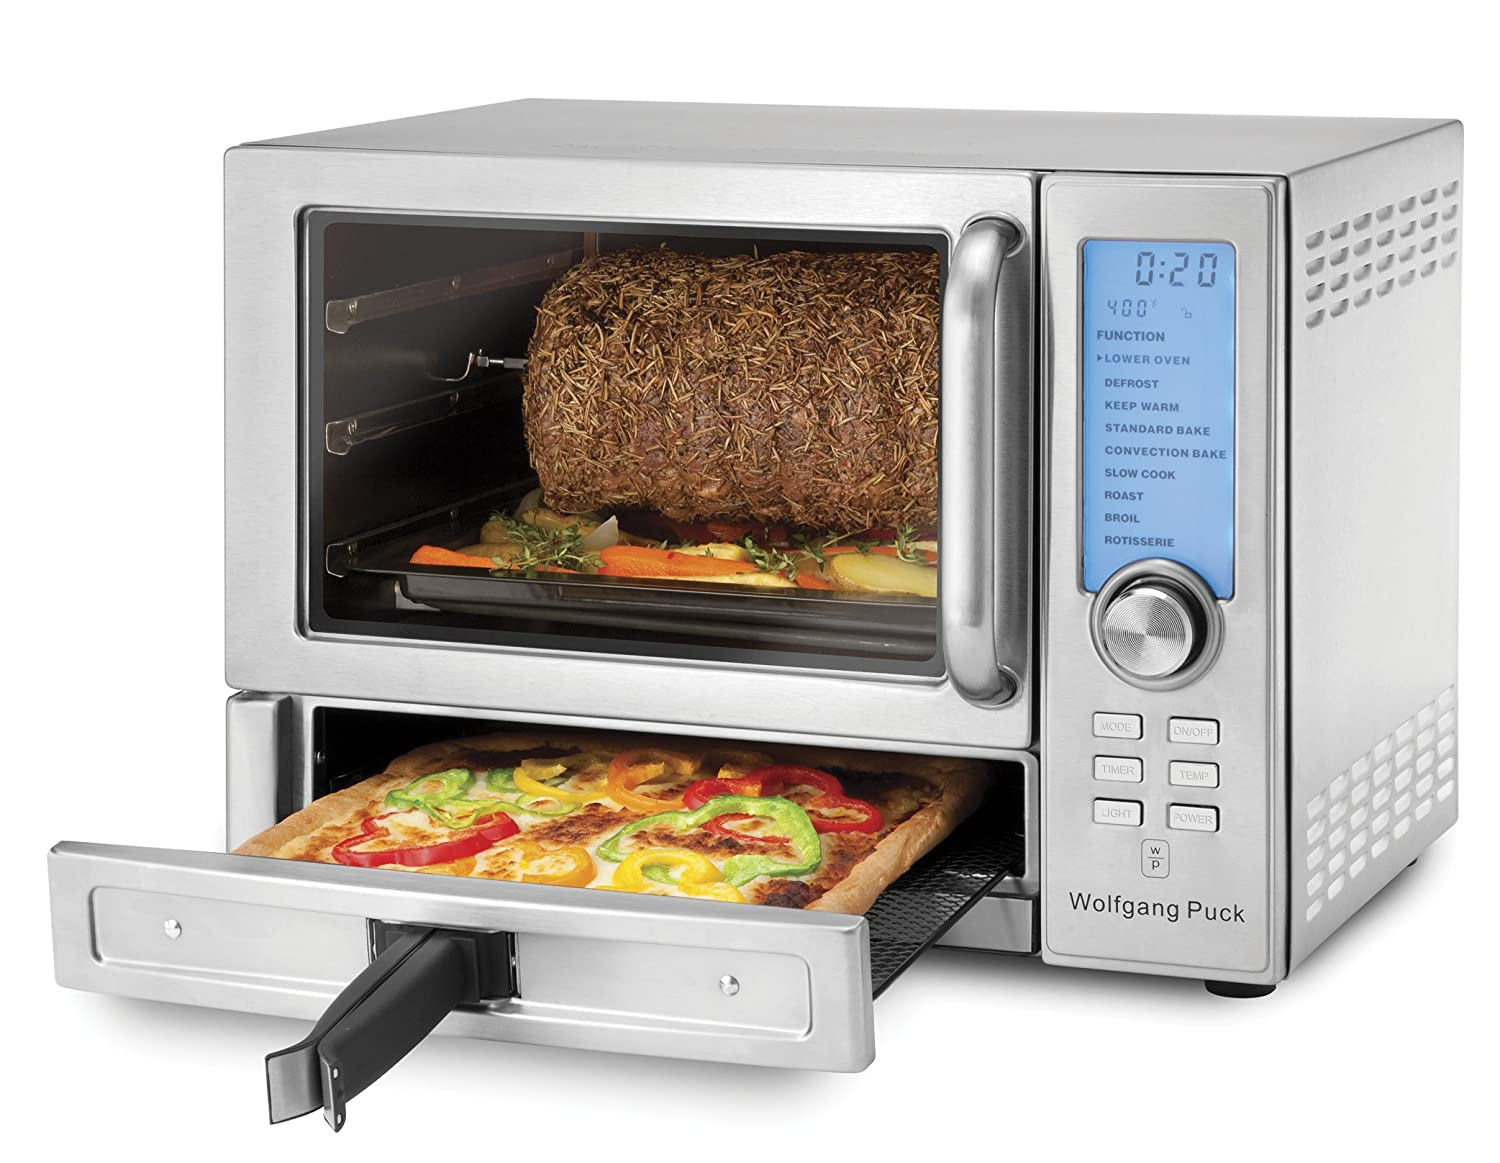 Amazon Wolfgang Puck Dual Convection Oven with Rotisserie and